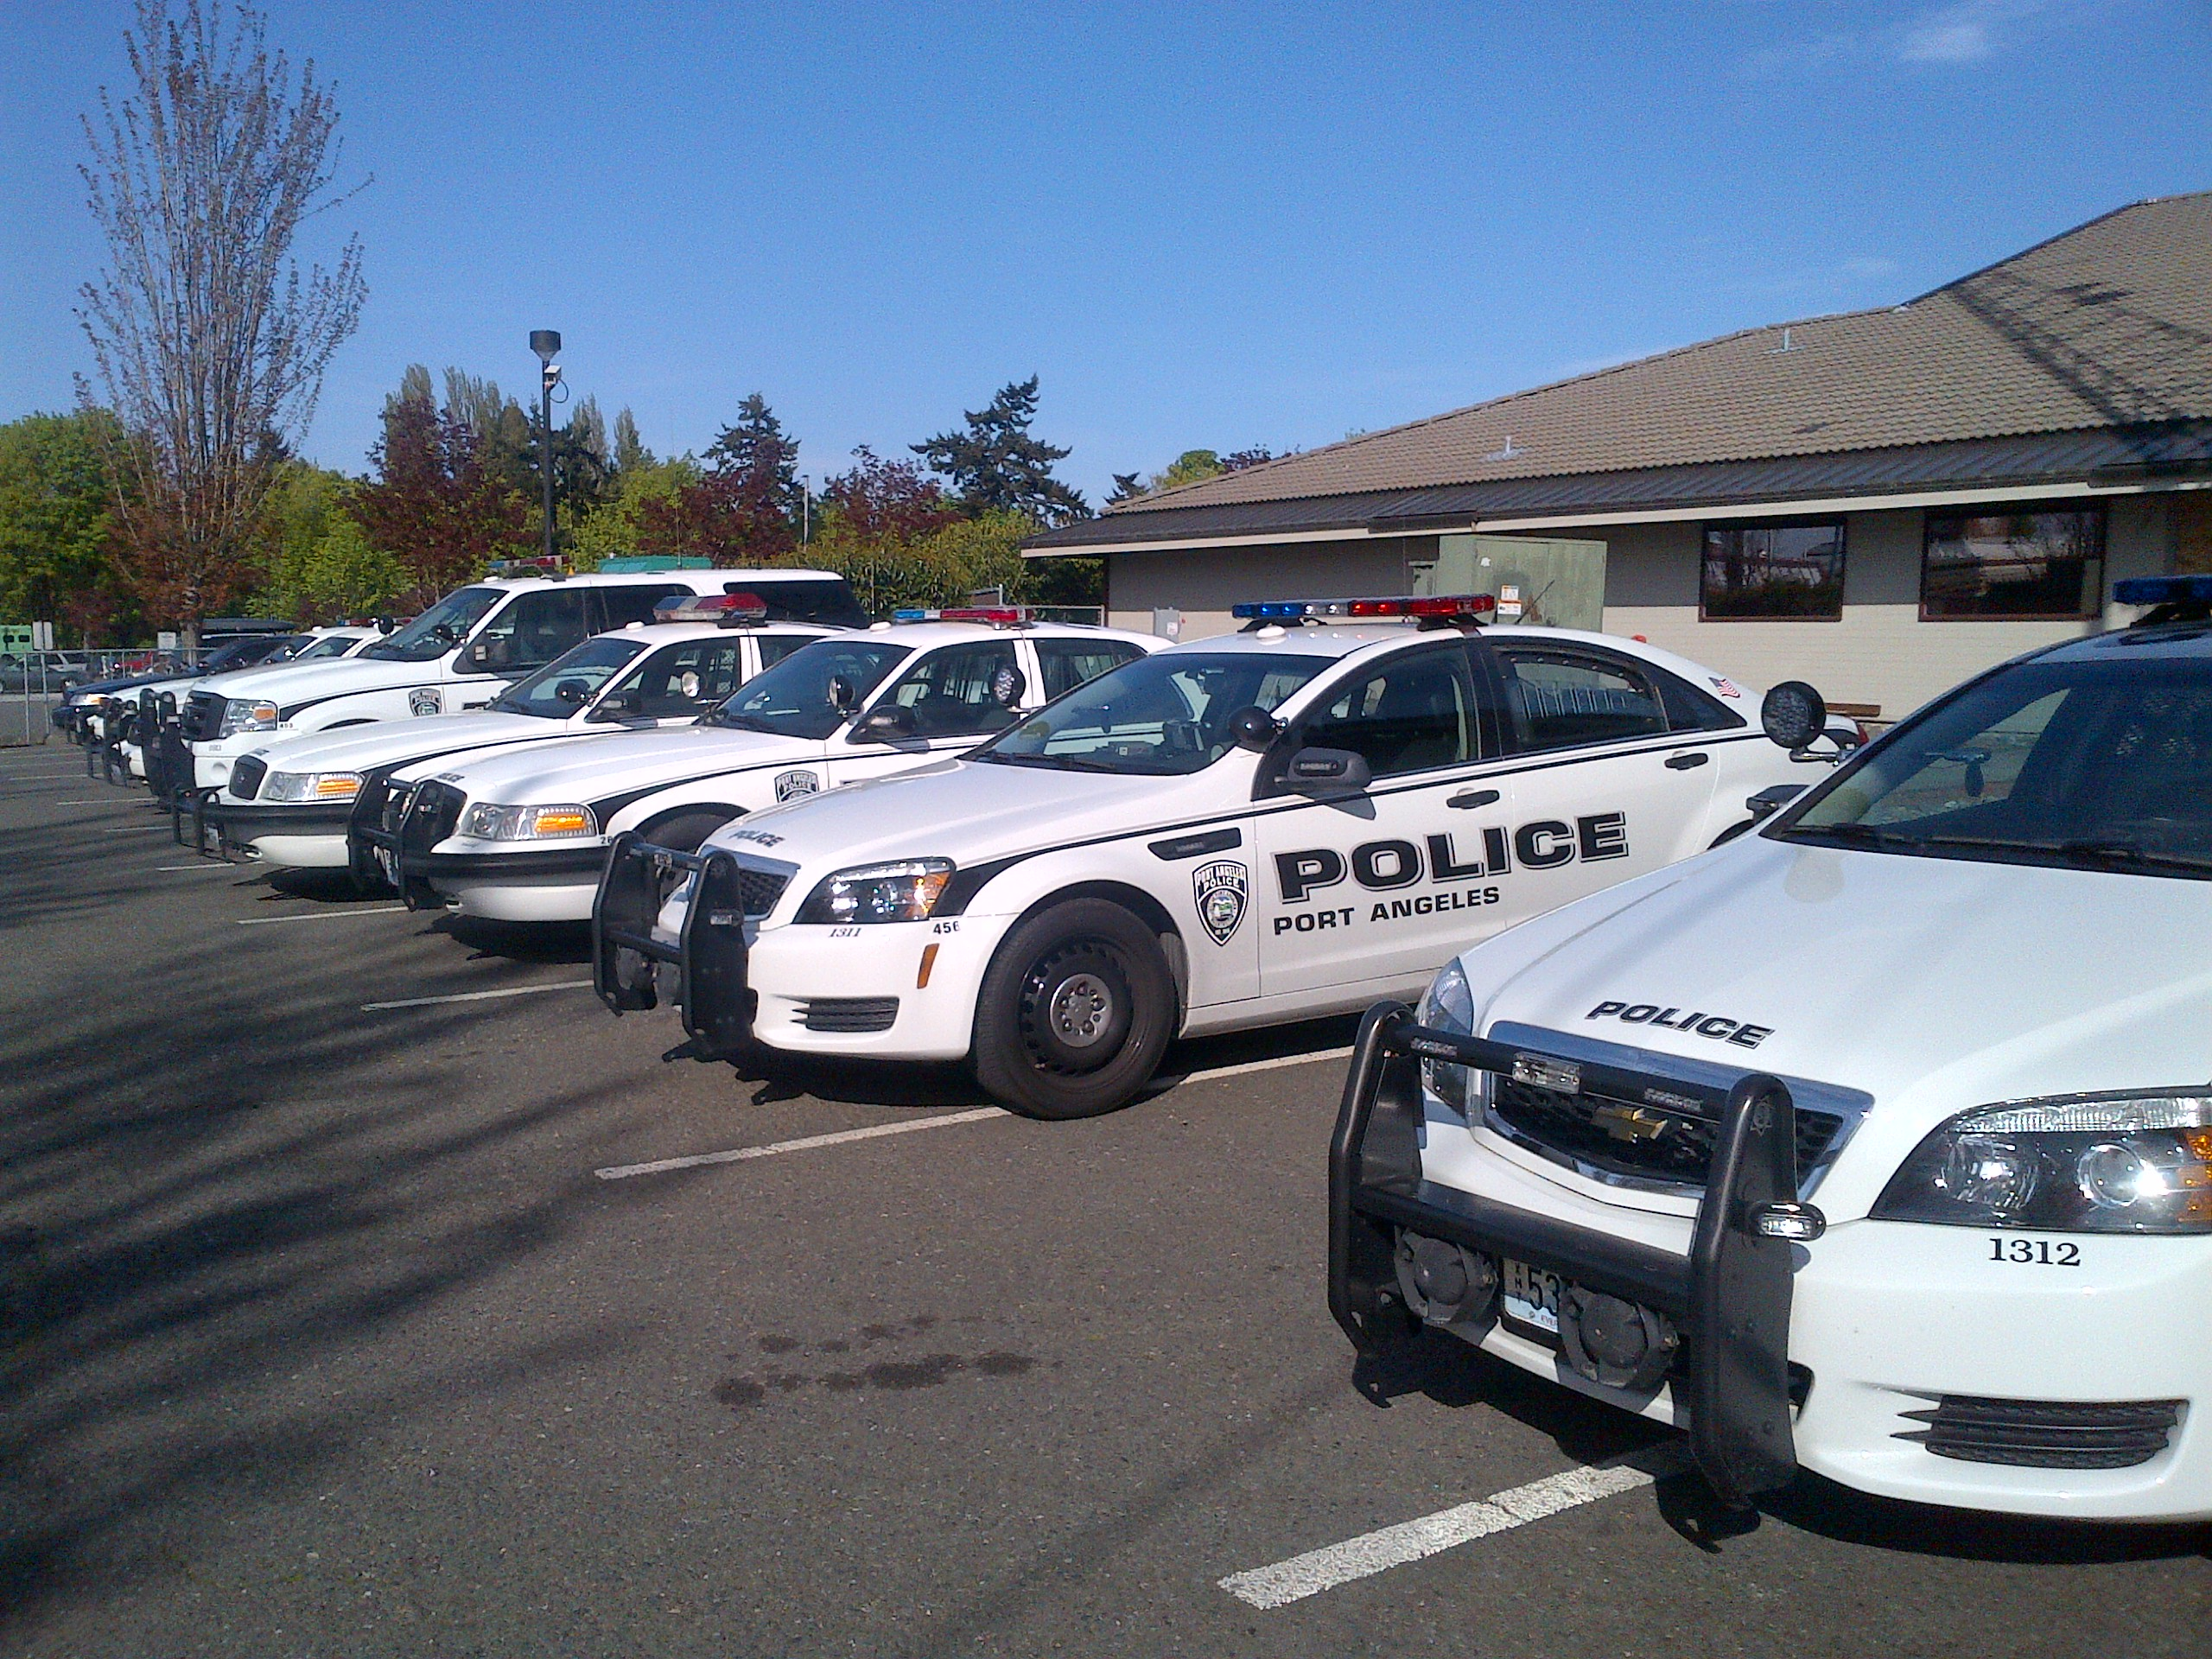 Port Angeles Patrol Cars